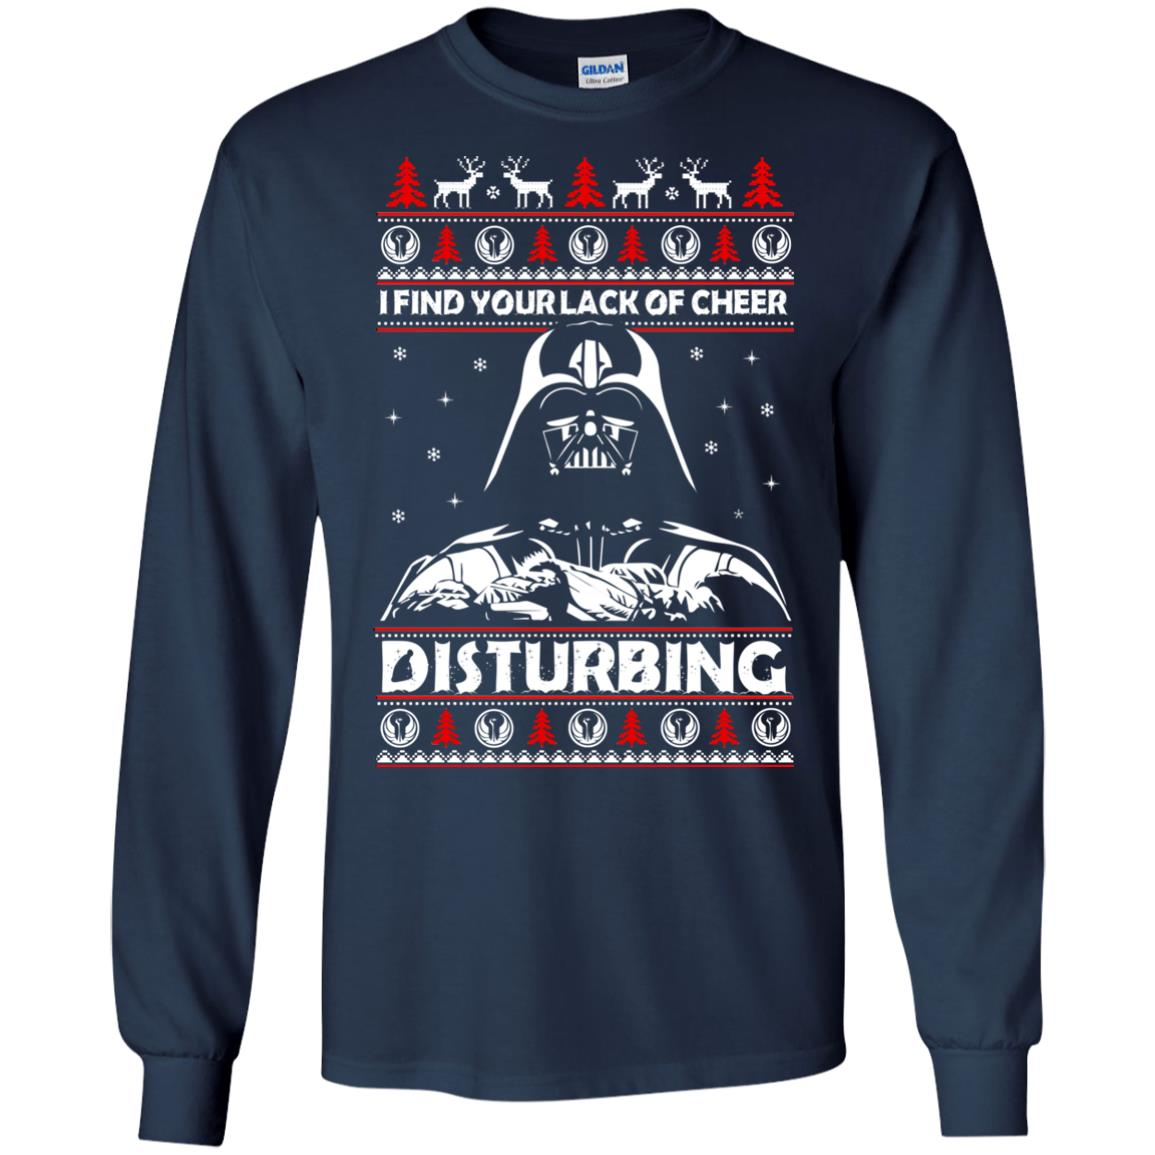 image 1761 - Darth Vader: I Find Your Lack of Cheer Disturbing Sweater, Shirt